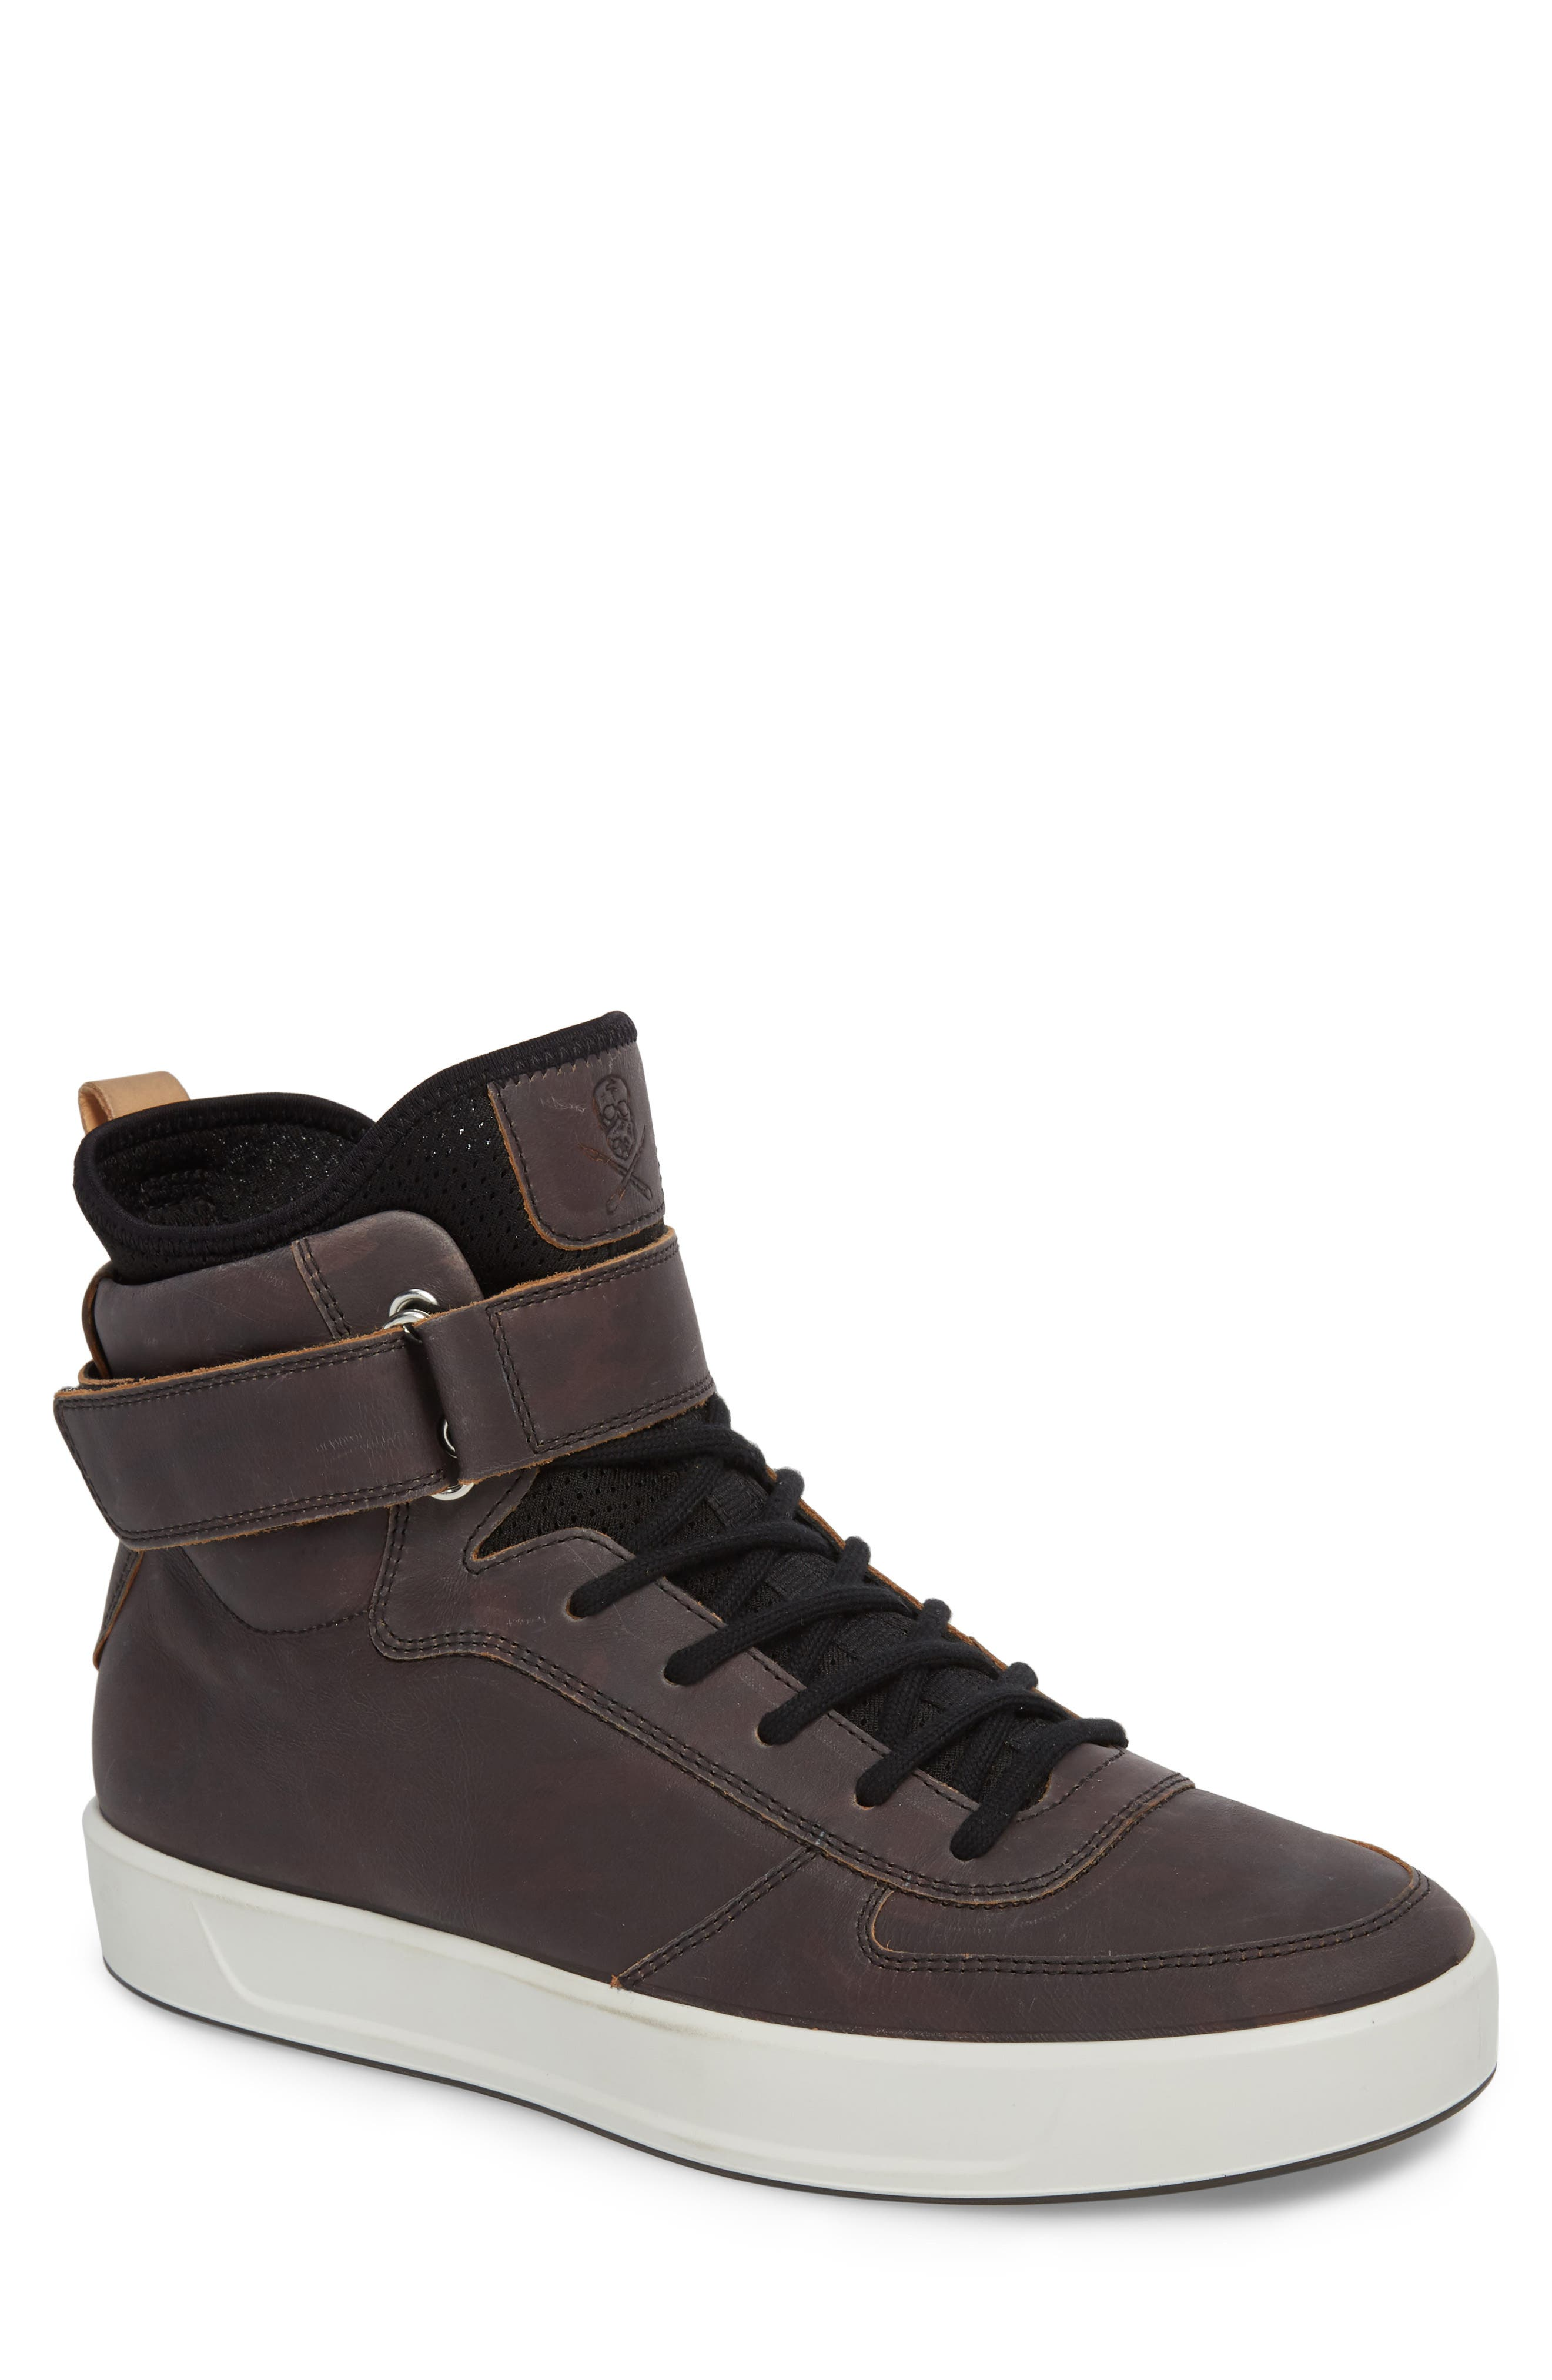 Soft 8 Color Changing Sneaker Boot,                         Main,                         color, Black/ Camouflage Leather